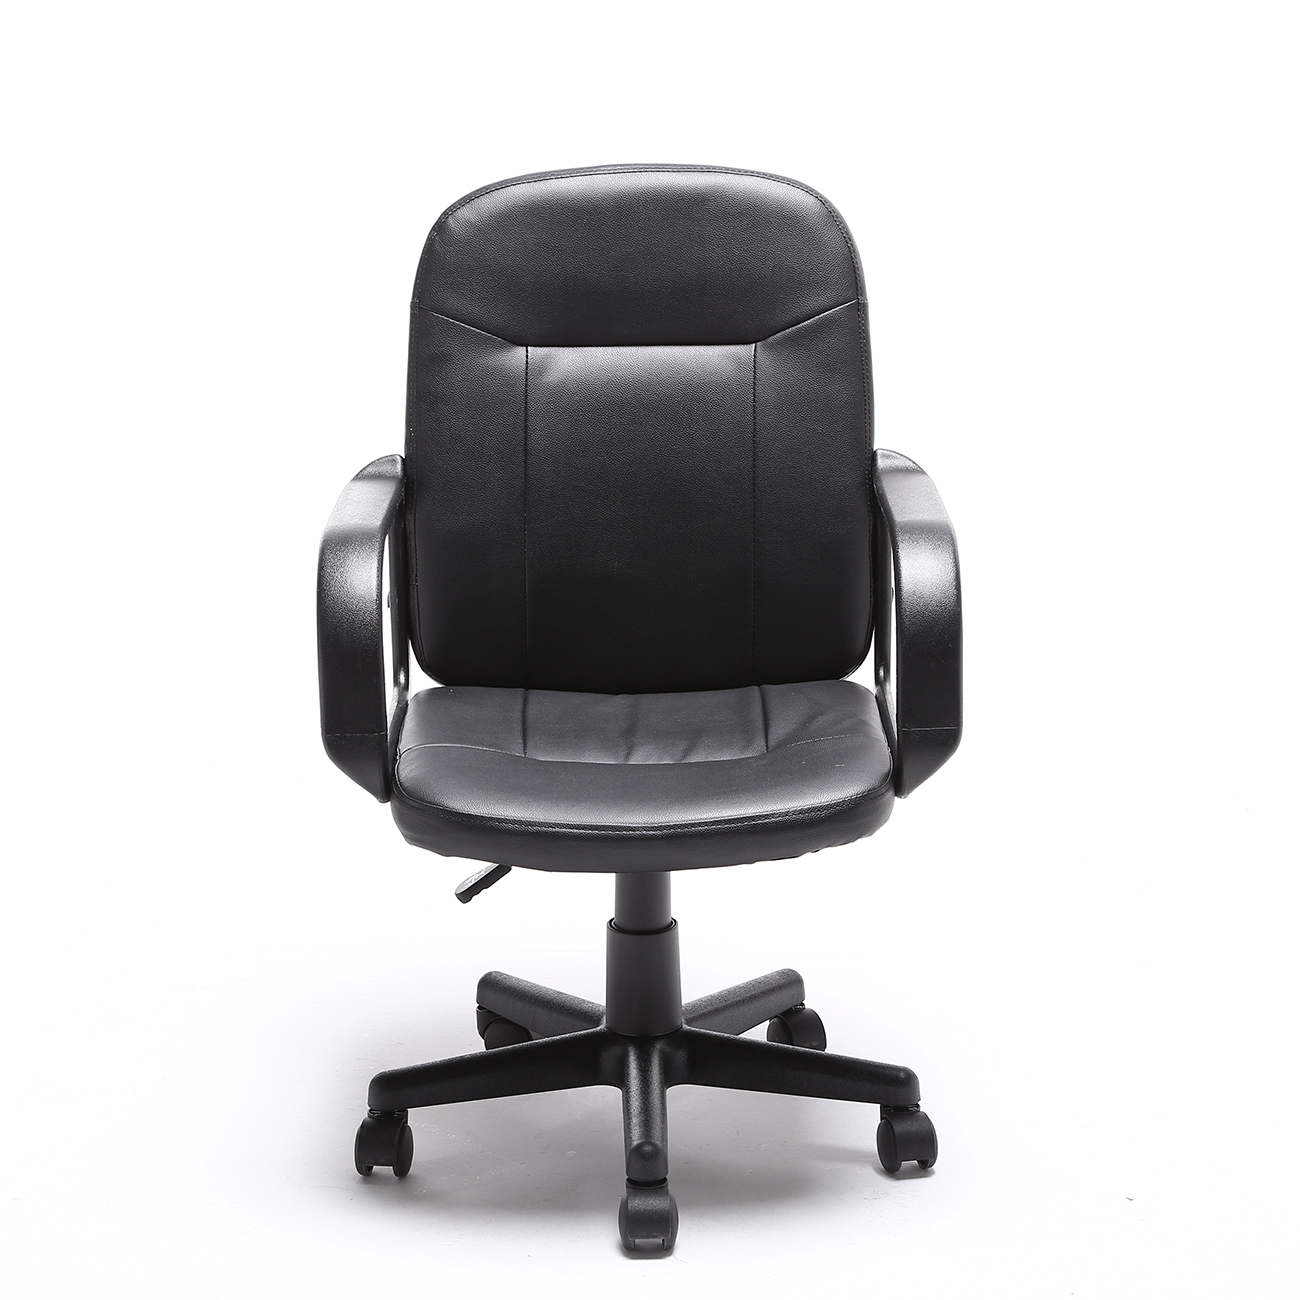 modern black leather desk chair cover rentals in charlotte nc office executive pu computer